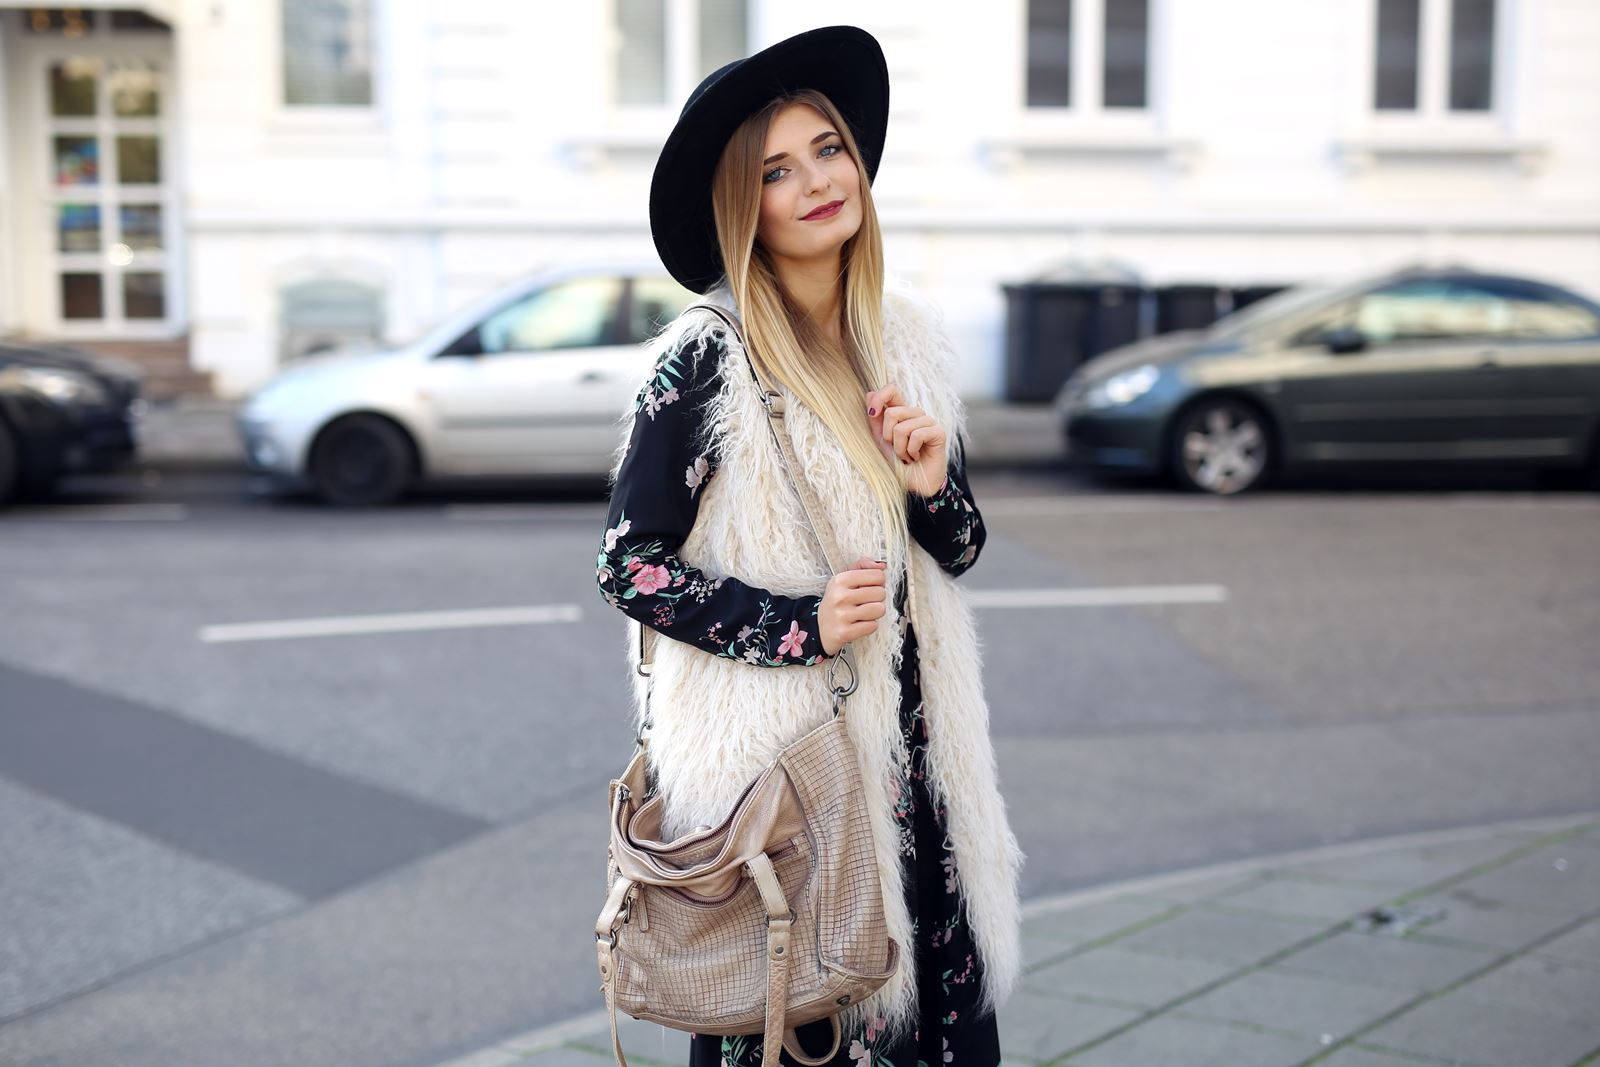 modeblog-fashion-blog-outfit-herbst-fake-fur-maxi-kleid-6